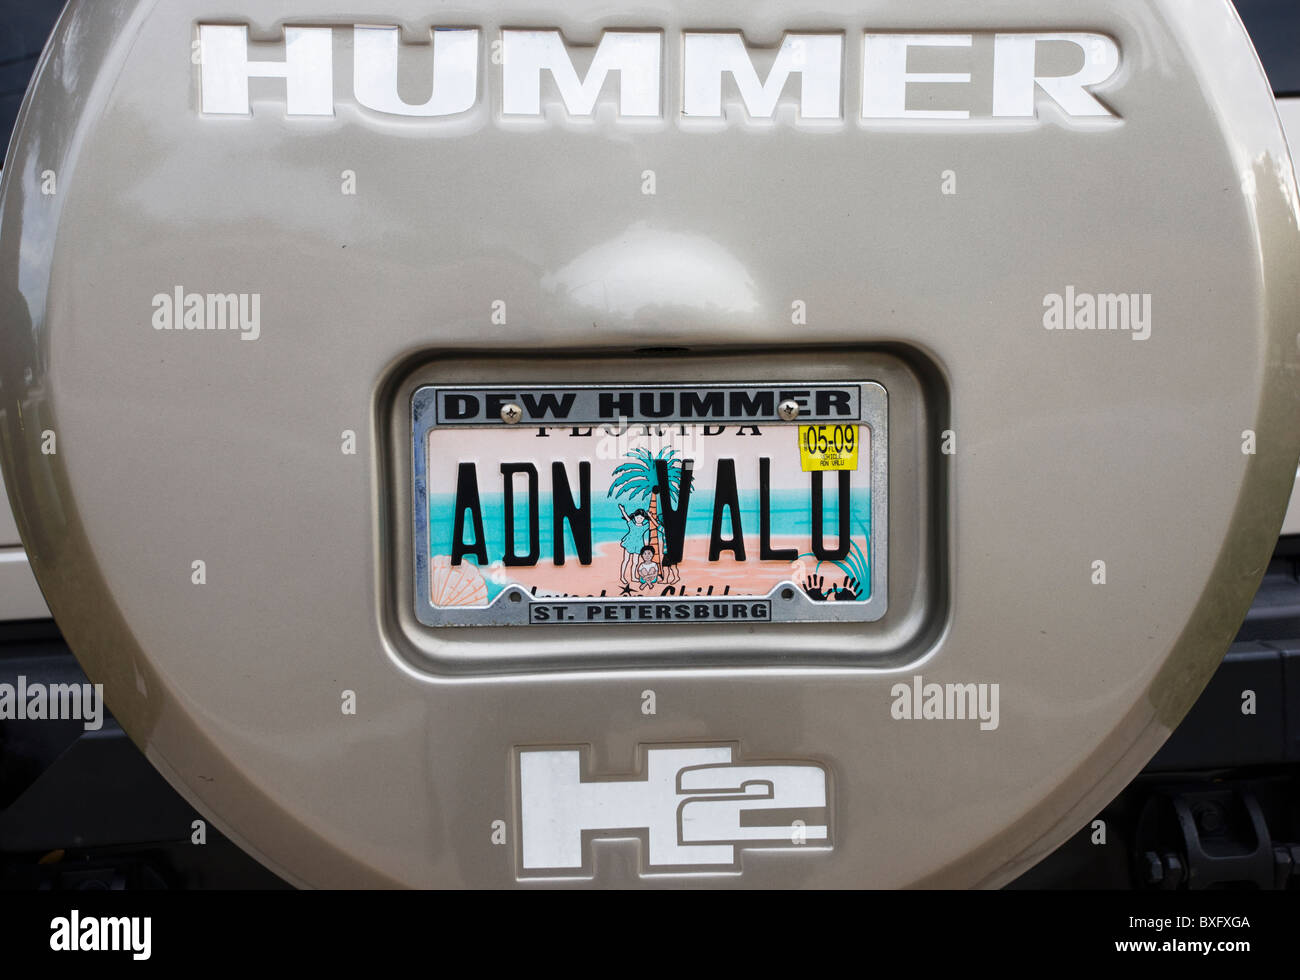 Vehicle registration plate on Hummer sports utility vehicle in Anna Maria Island, United States of America - Stock Image